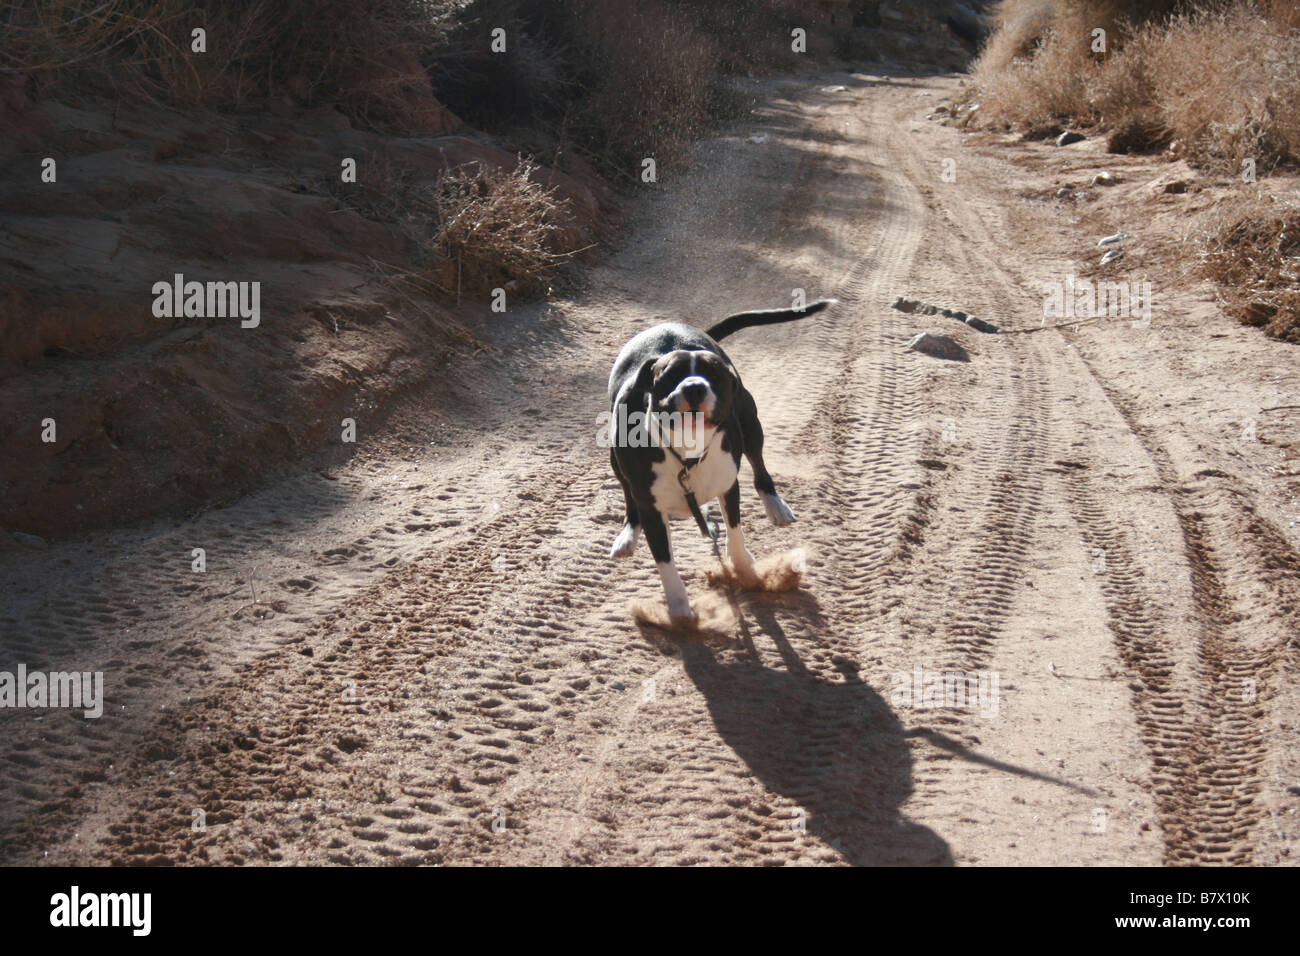 pitbull running at high speed on dirt road - Stock Image